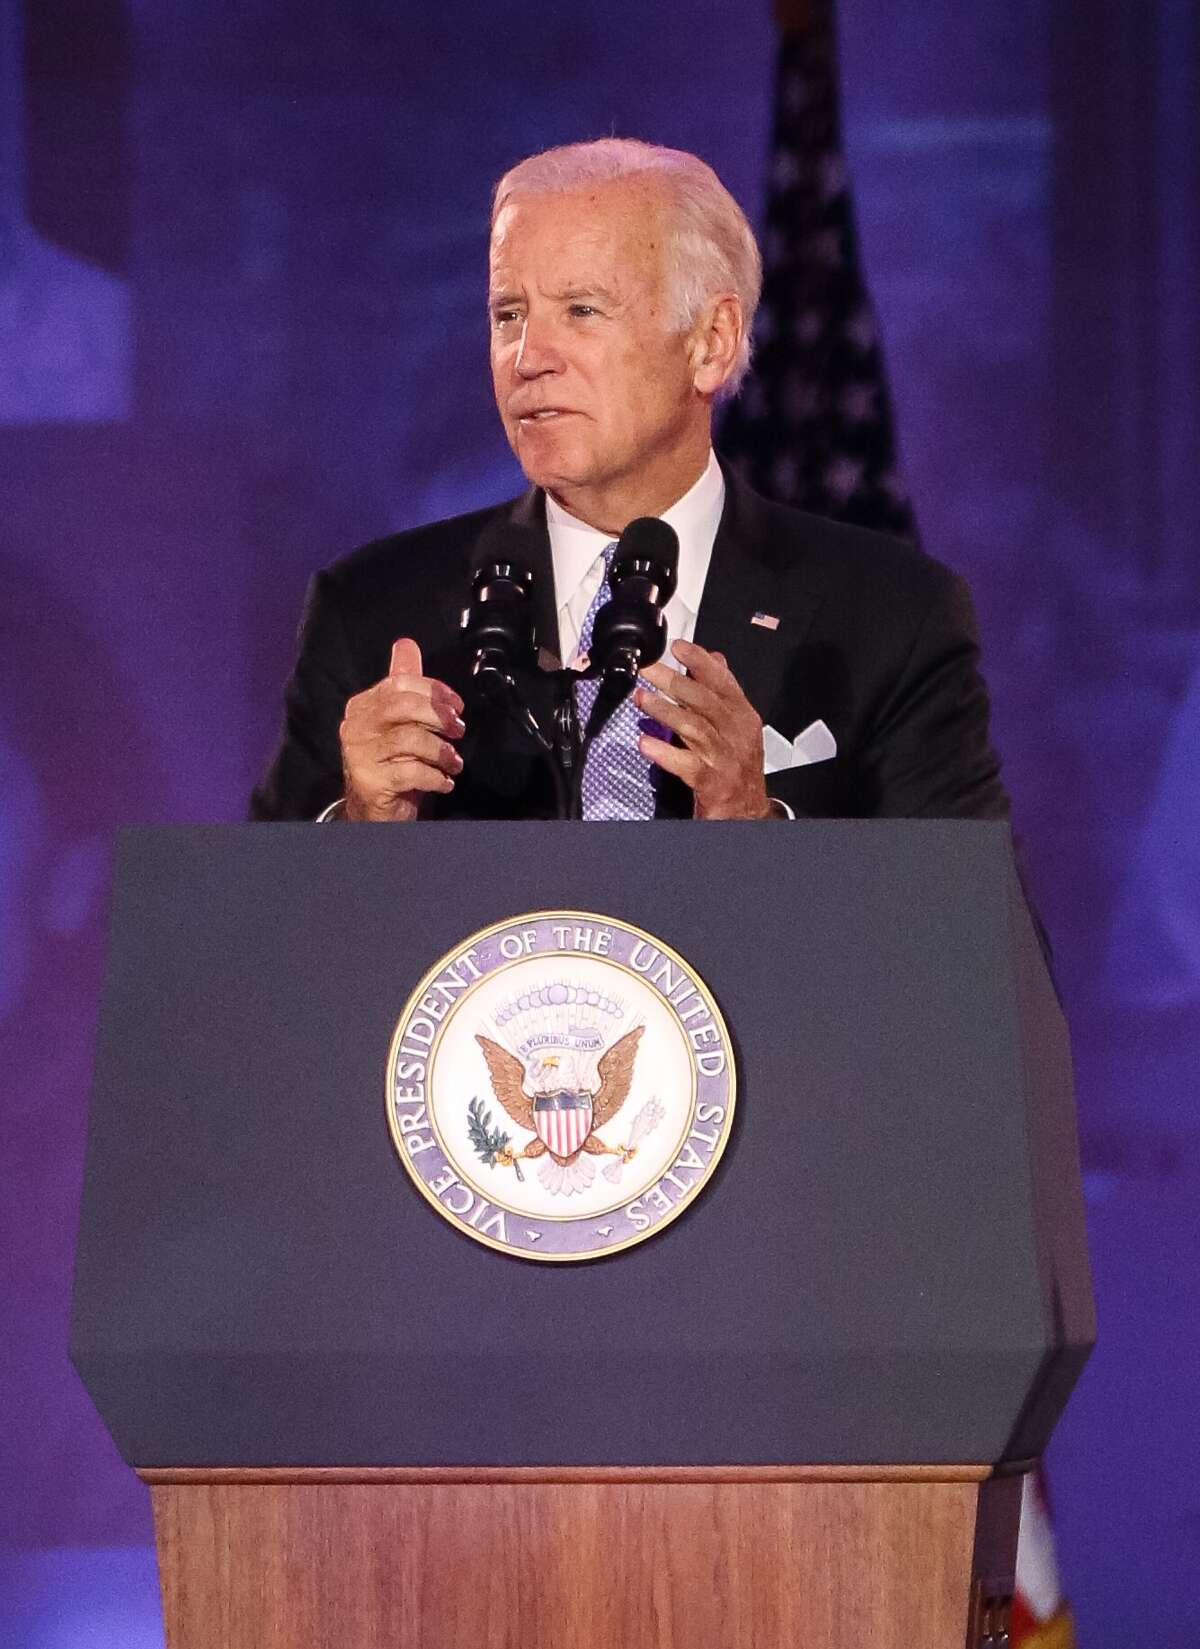 United States Vice President Joe Biden gives a speech at the 75th Anniversary Gala of University of Texas MD Anderson Cancer Center on Thursday, November 10, in Houston. Biden' son, Beau Biden, was treated at MD Anderson with brain cancer in 2013. (Yi-Chin/ Houston Chronicle)